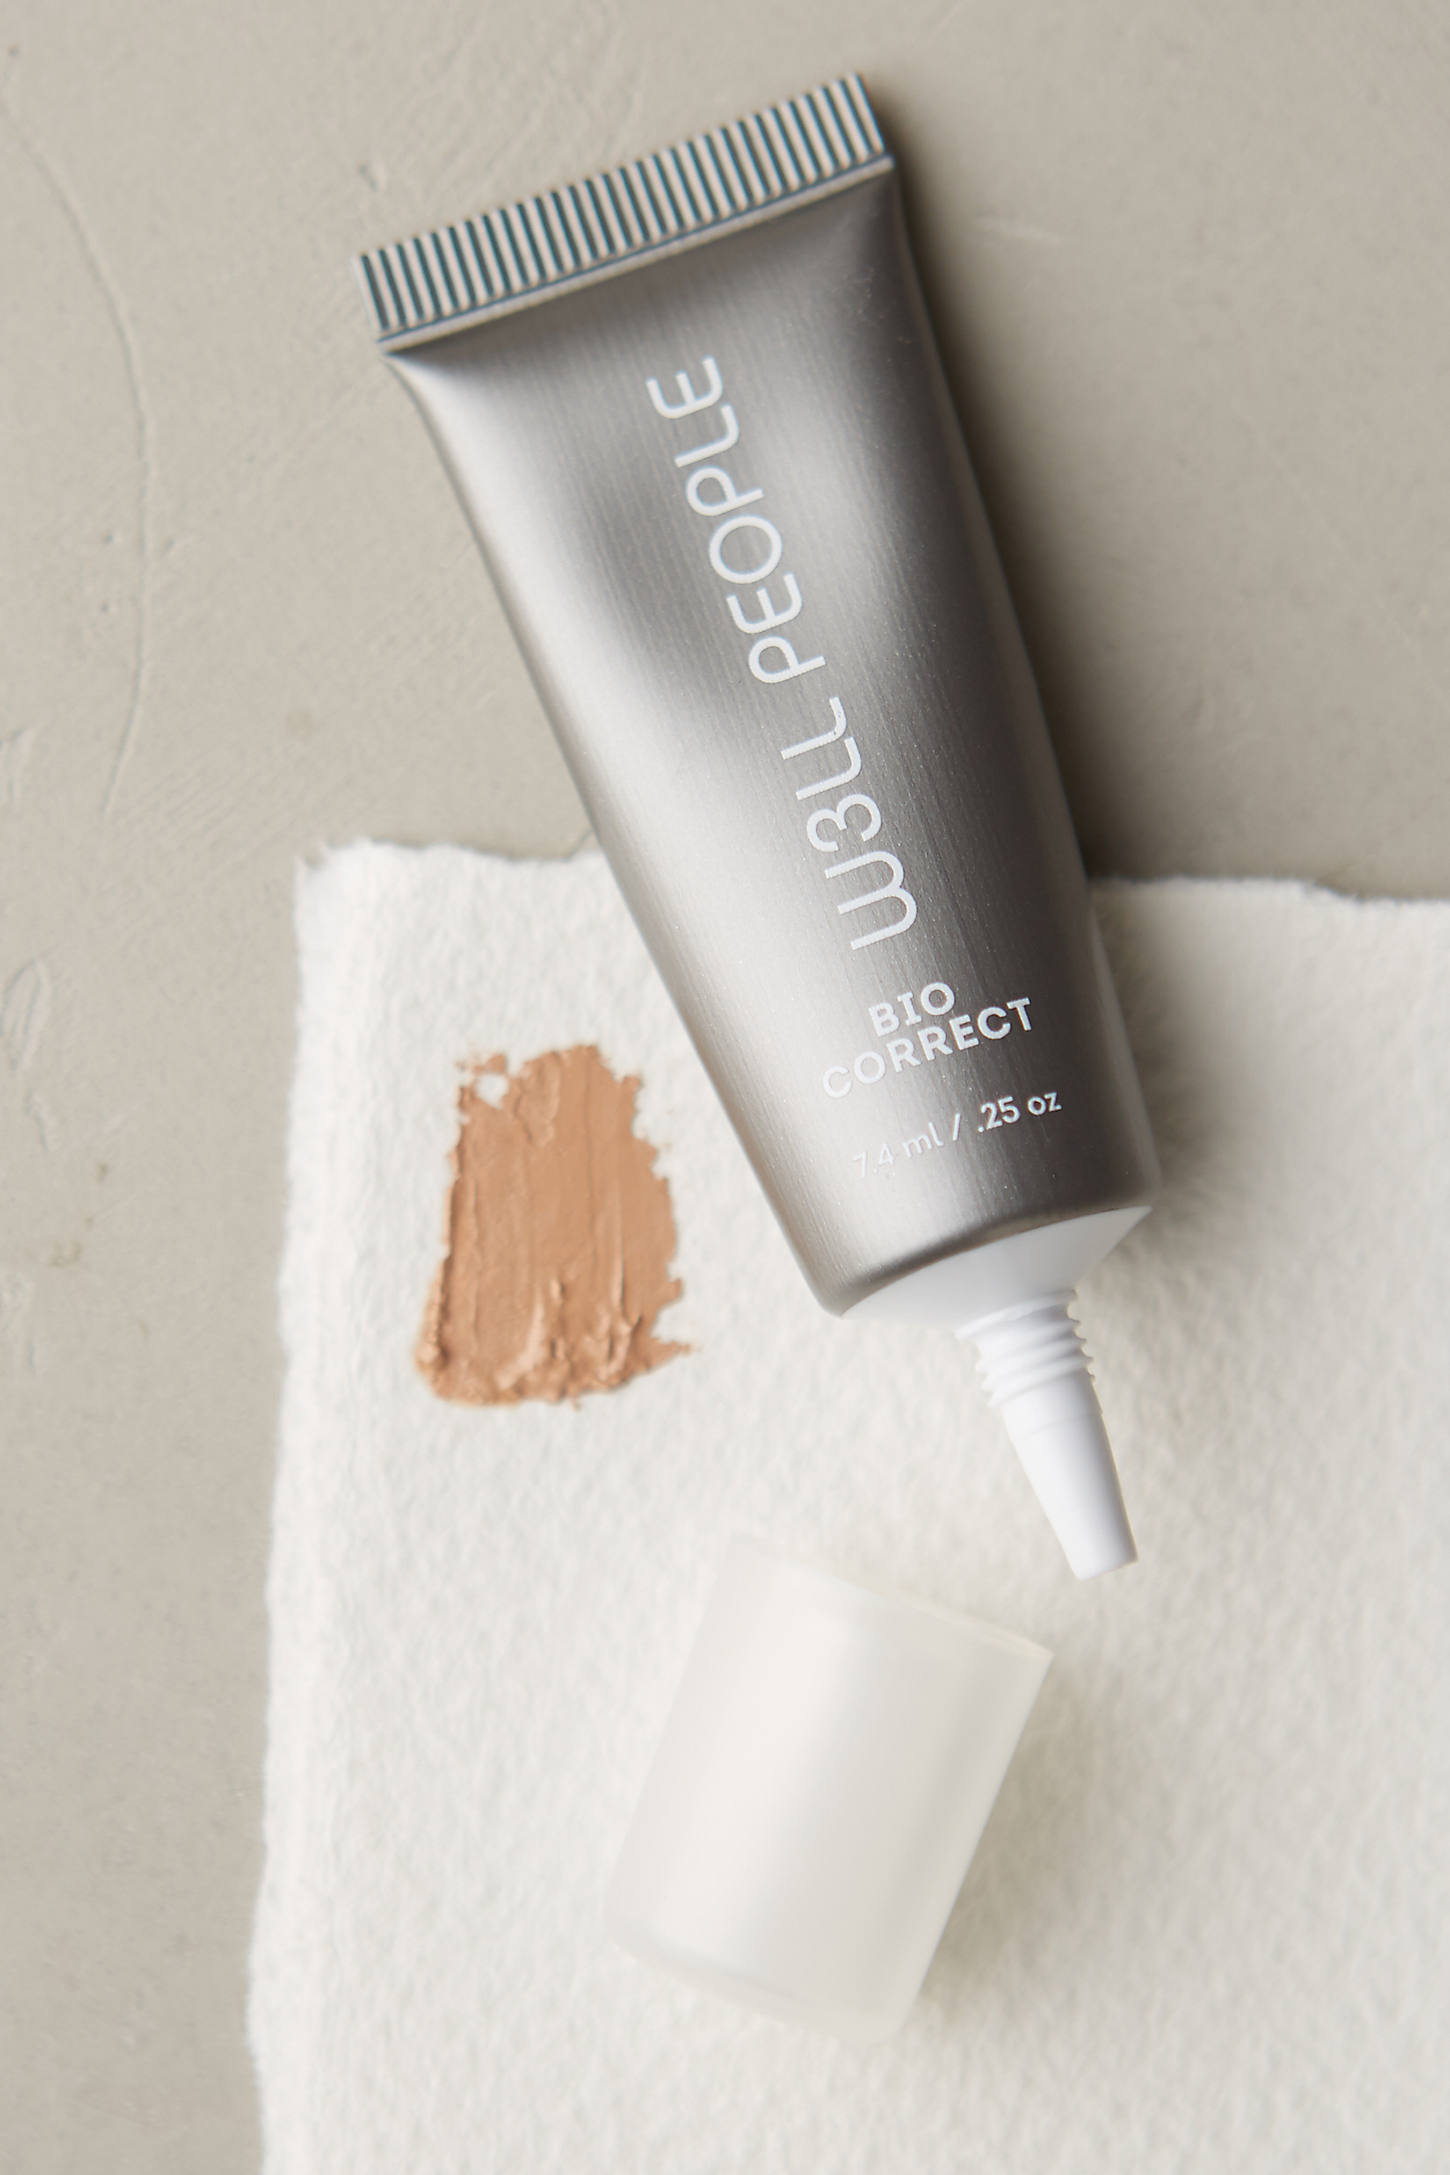 W3LL PEOPLE Bio Correcting Multi-Action Concealer